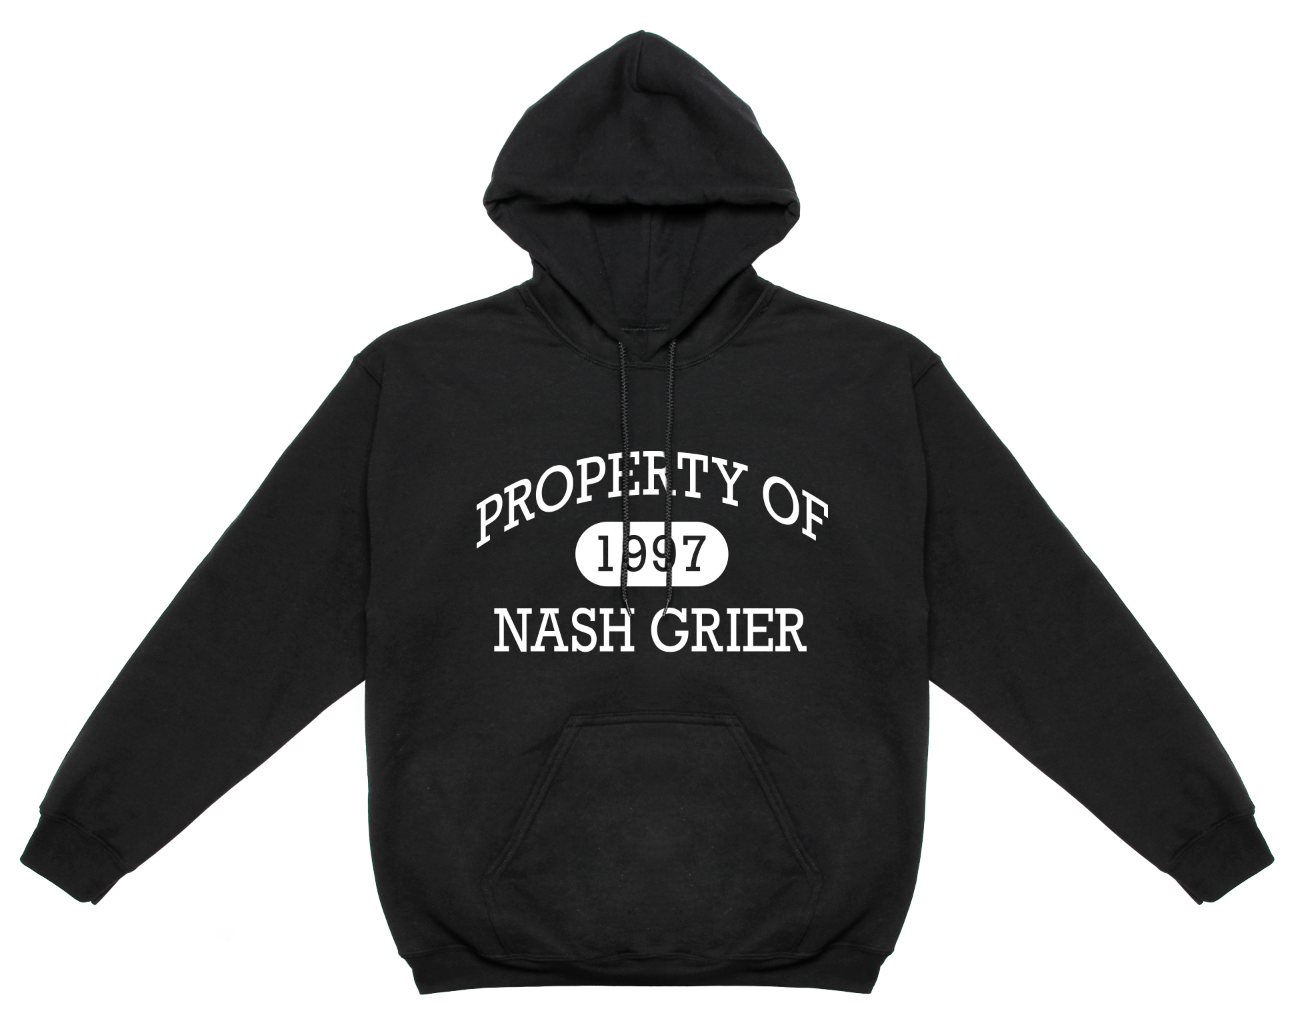 Nash Grier Nash Grier Hooded Sweatshirt - BLV Brands